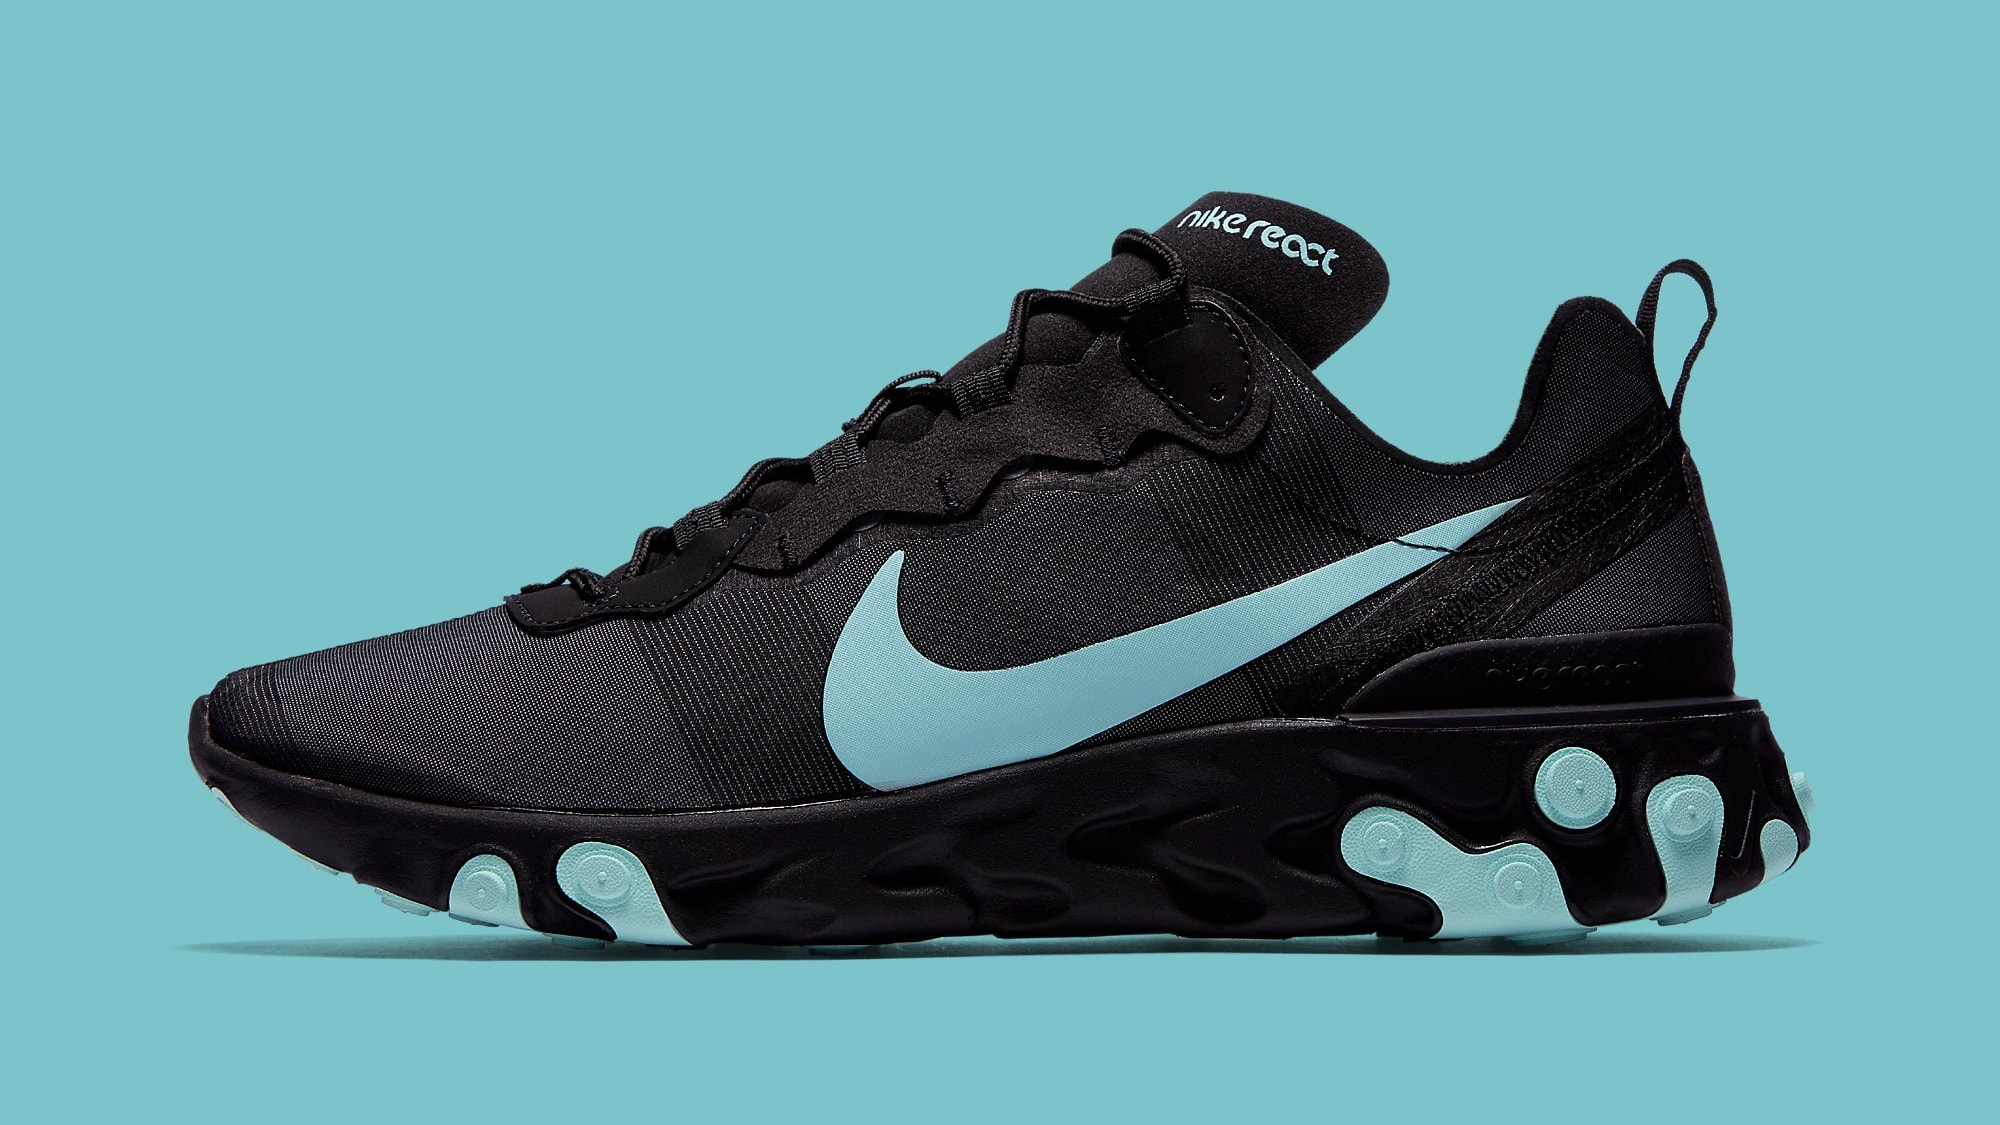 info for 0ff2c 42100 Nike React Element 55 Black Jade Release Date BQ6166-004 Profile